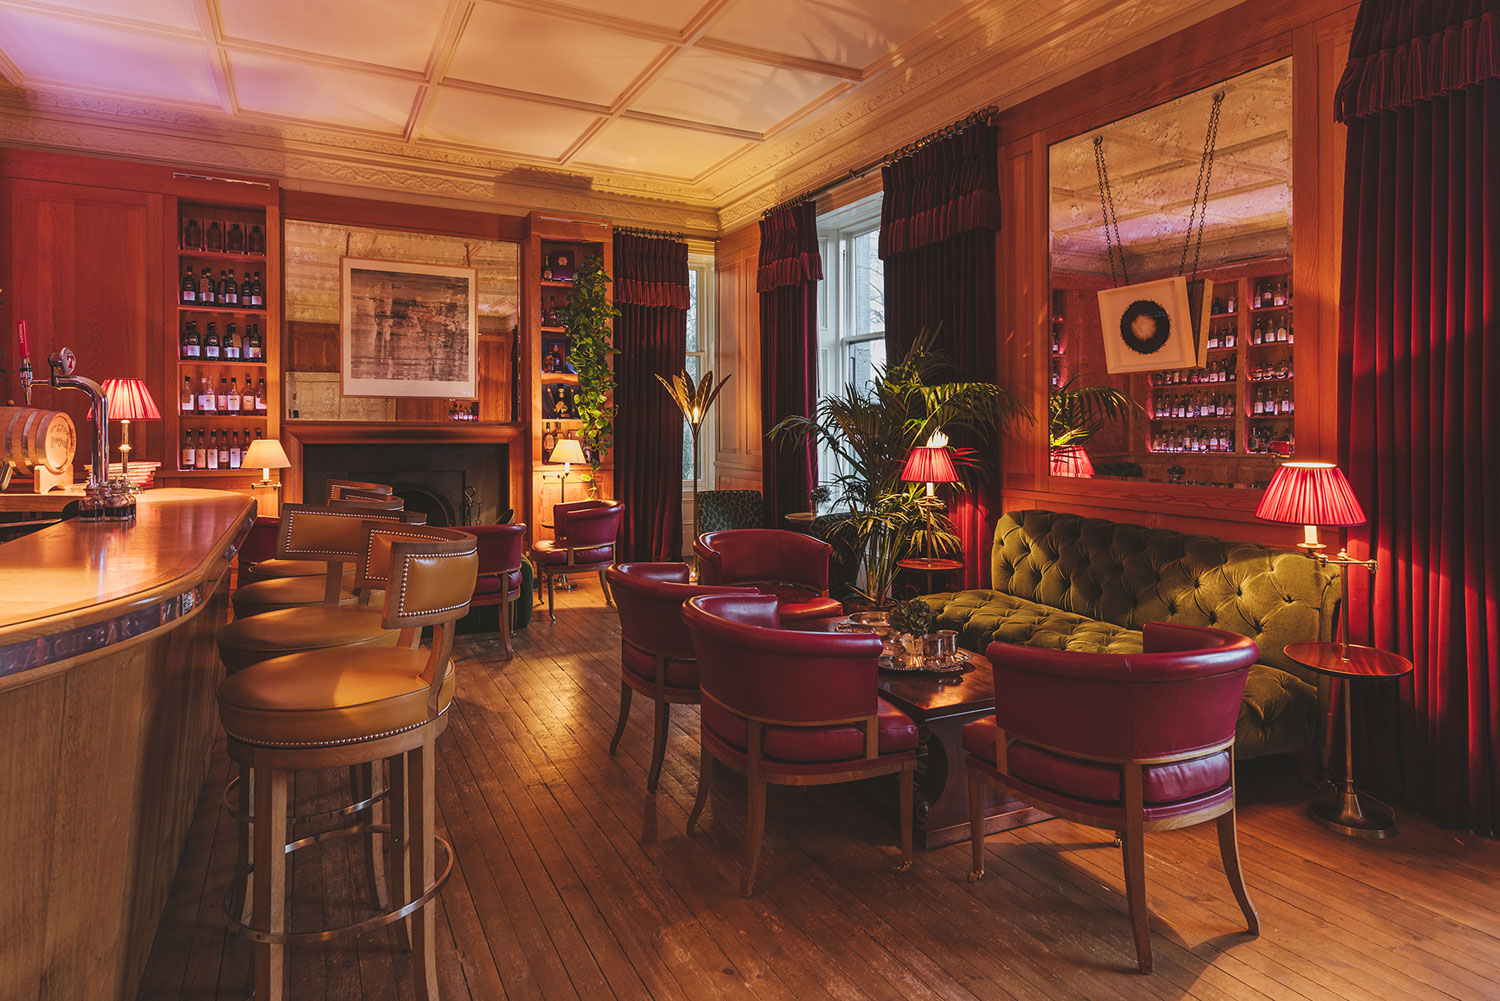 The Craigellachie Hotel in Speyside Is 125 Years Old! 6